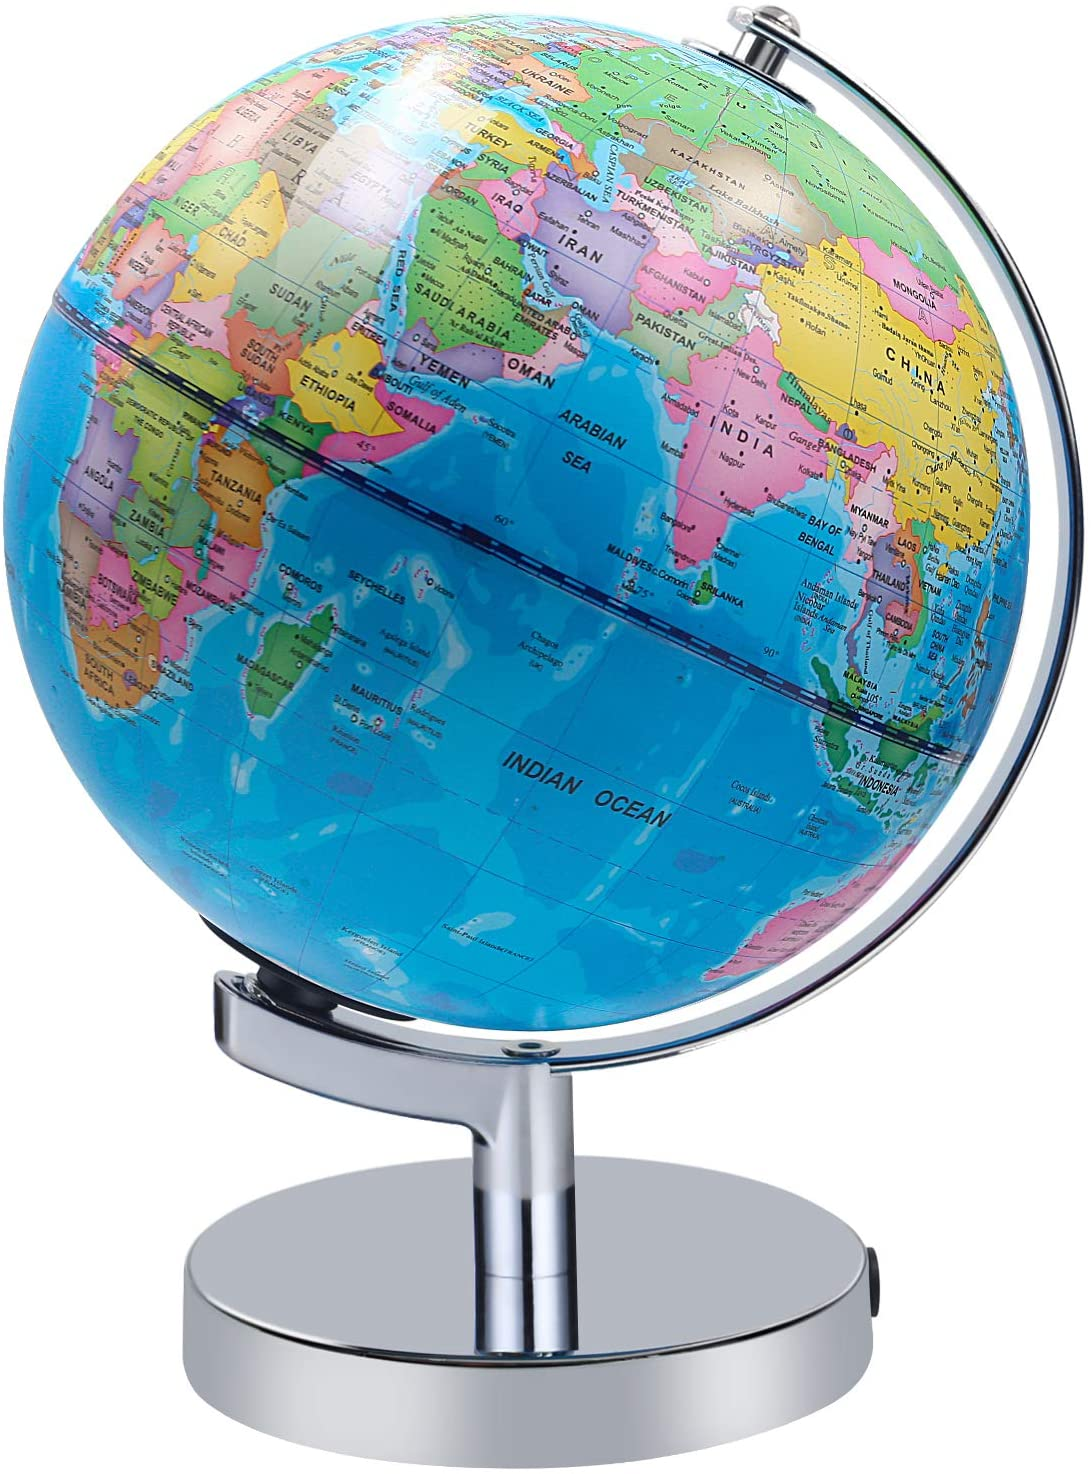 Illuminated World Globe for Kids, Educational Globe with Stand Built in LED Night Light Earth Map and Constellation View, 2 in 1 Interactive Educational Geographic Earth Globe Learning Toy, 8 Inch